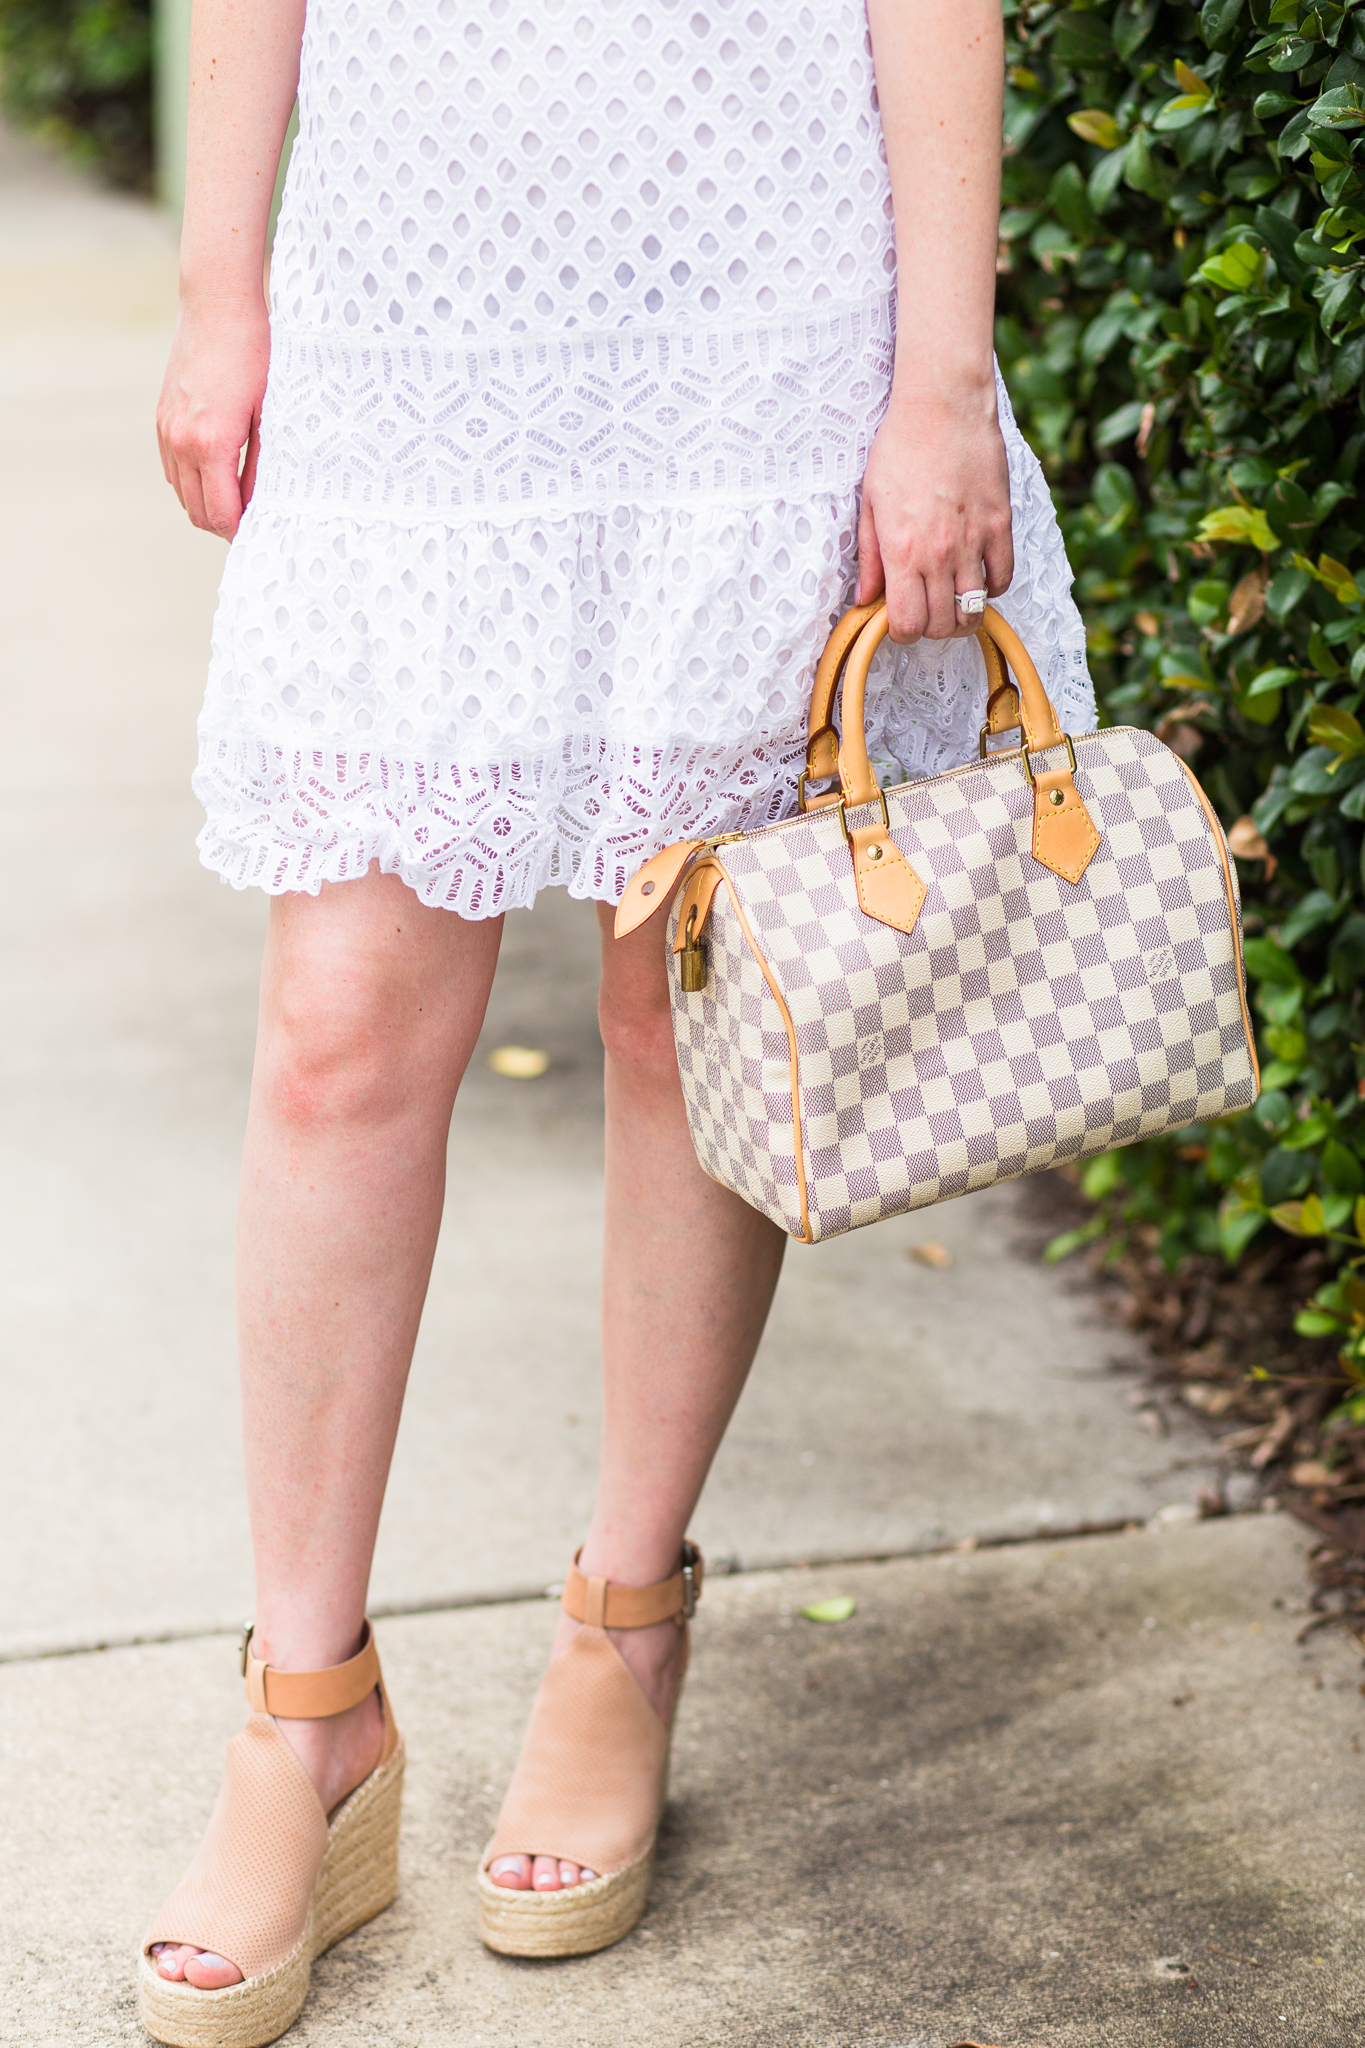 Tory Burch one shoulder eyelet dress, Tory Burch Zoe dress, Marc fisher annie wedges, eyelet dress, summer dress, summer fashion